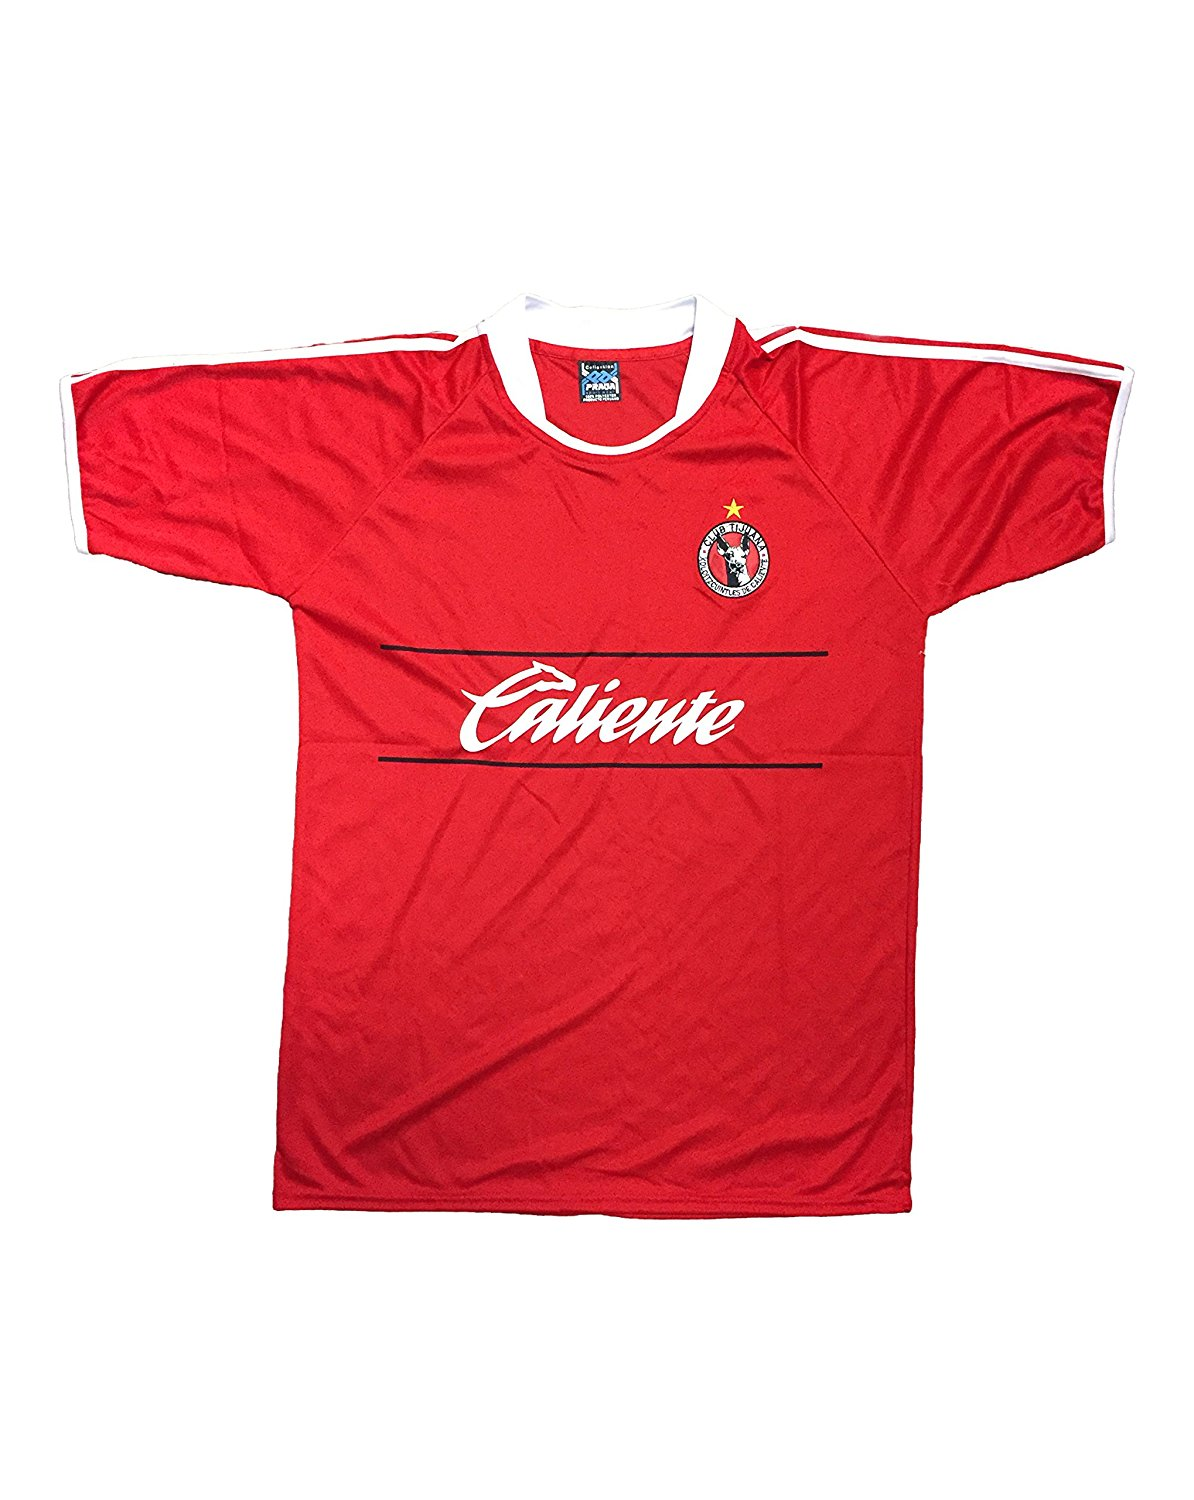 on sale 95bcc 94703 Cheap Jersey Of Tijuana, find Jersey Of Tijuana deals on ...